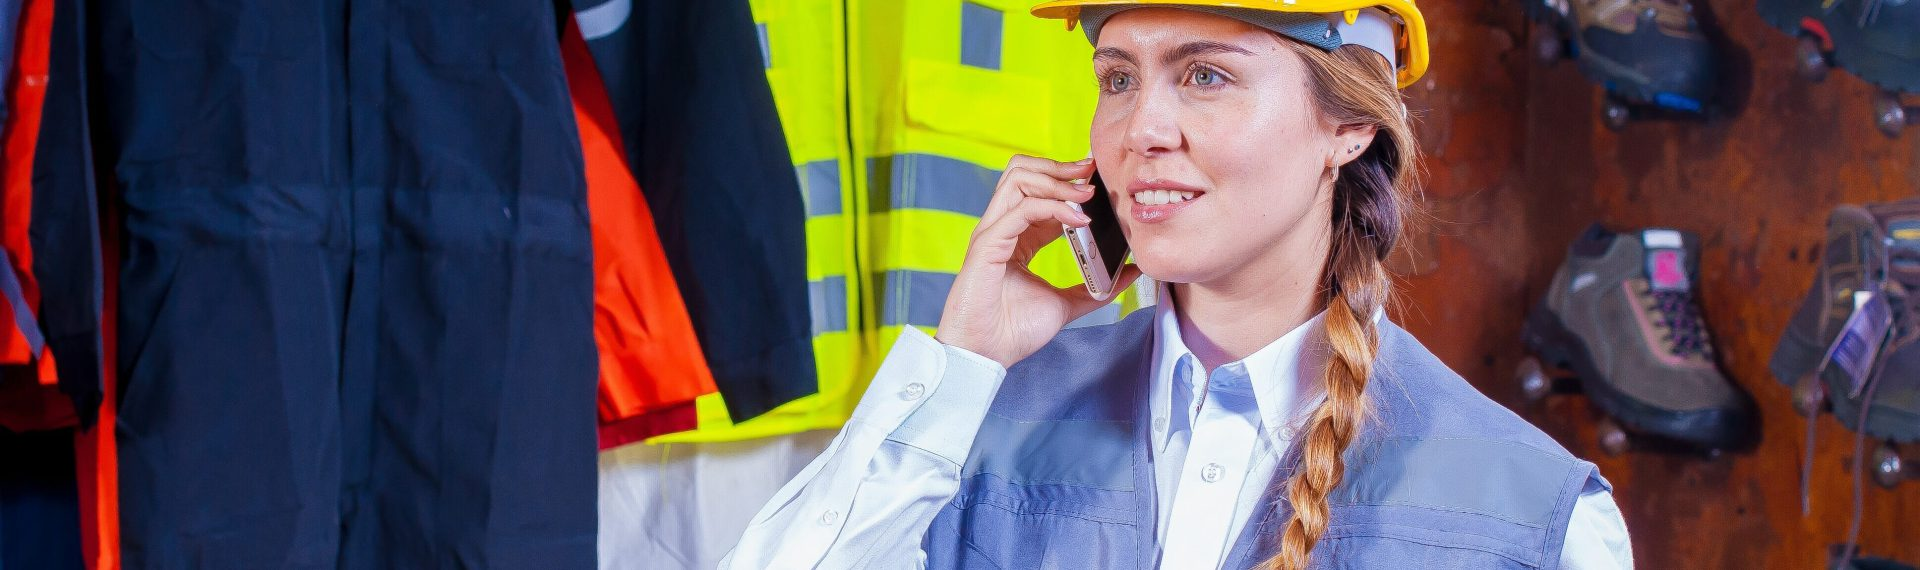 A Few Reasons For Women to Consider Learning a Skilled Trade